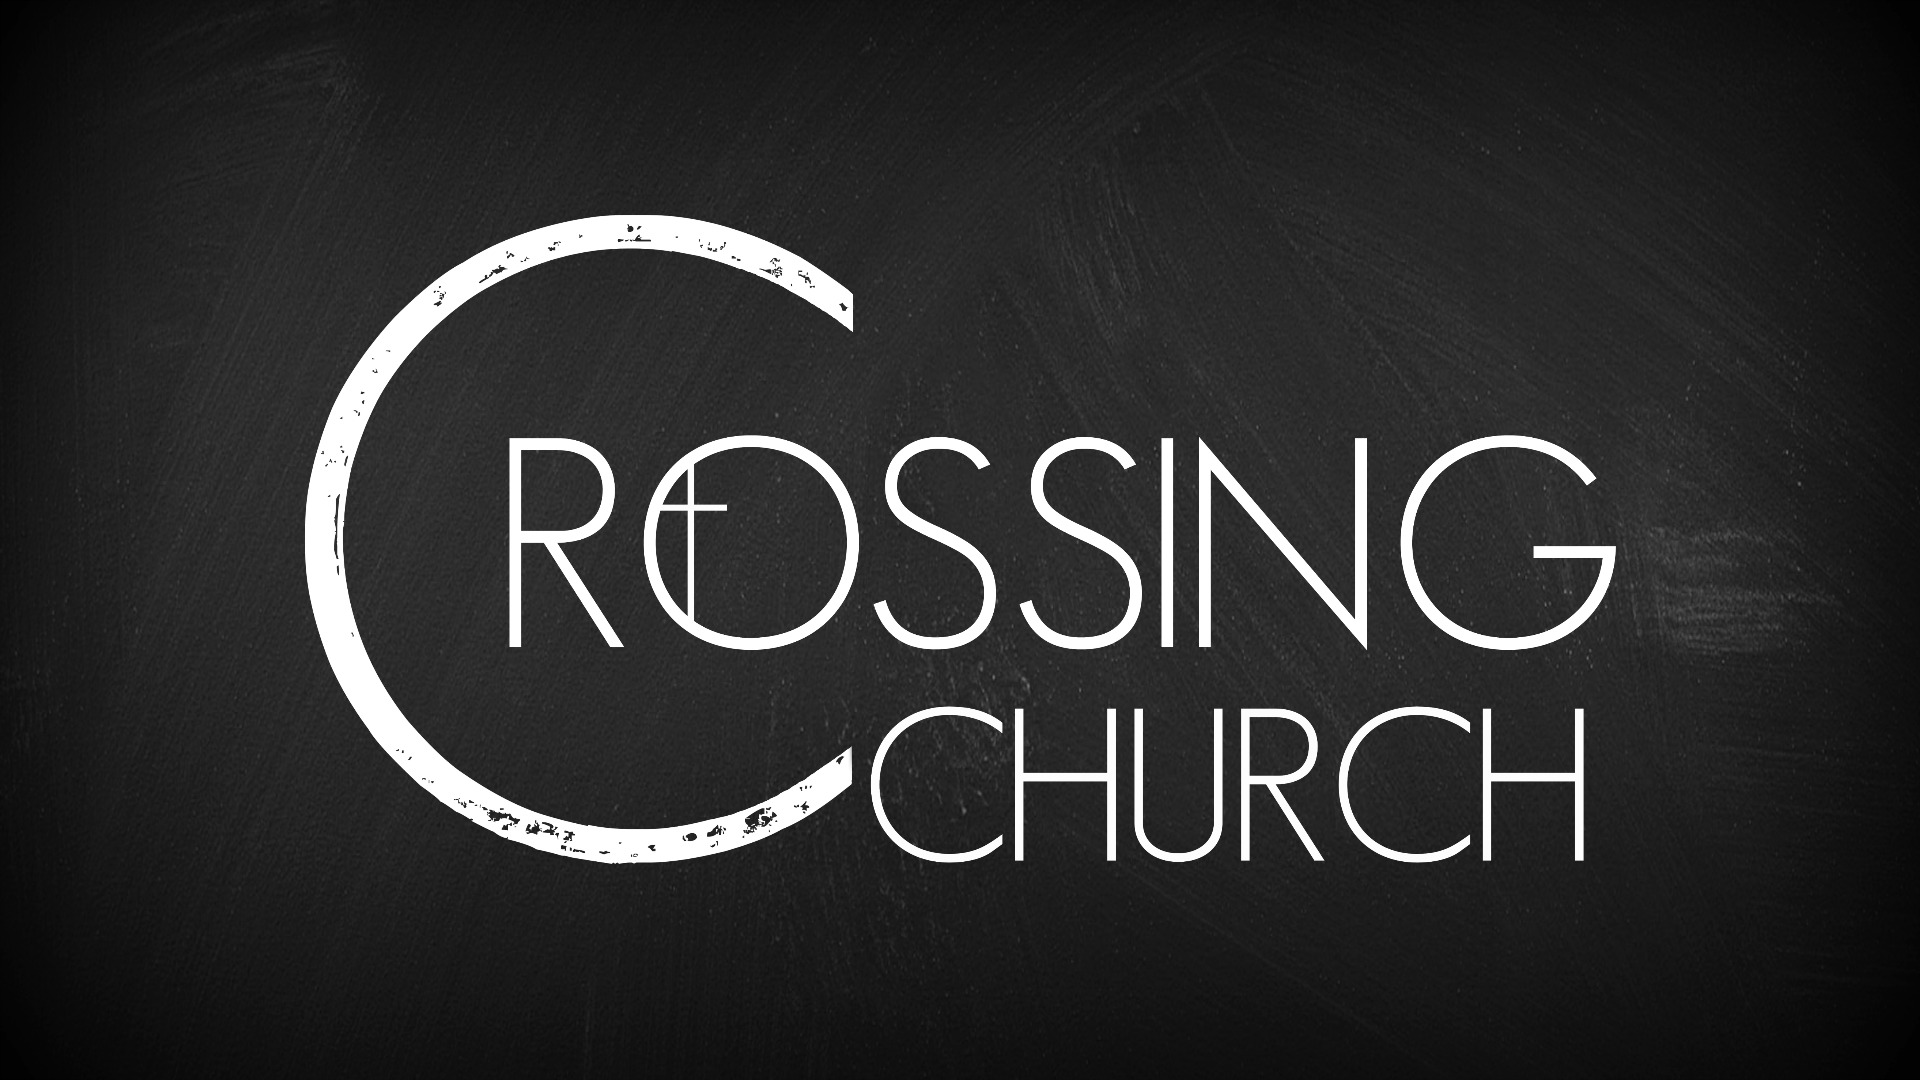 Crossing-(1920x1080).png